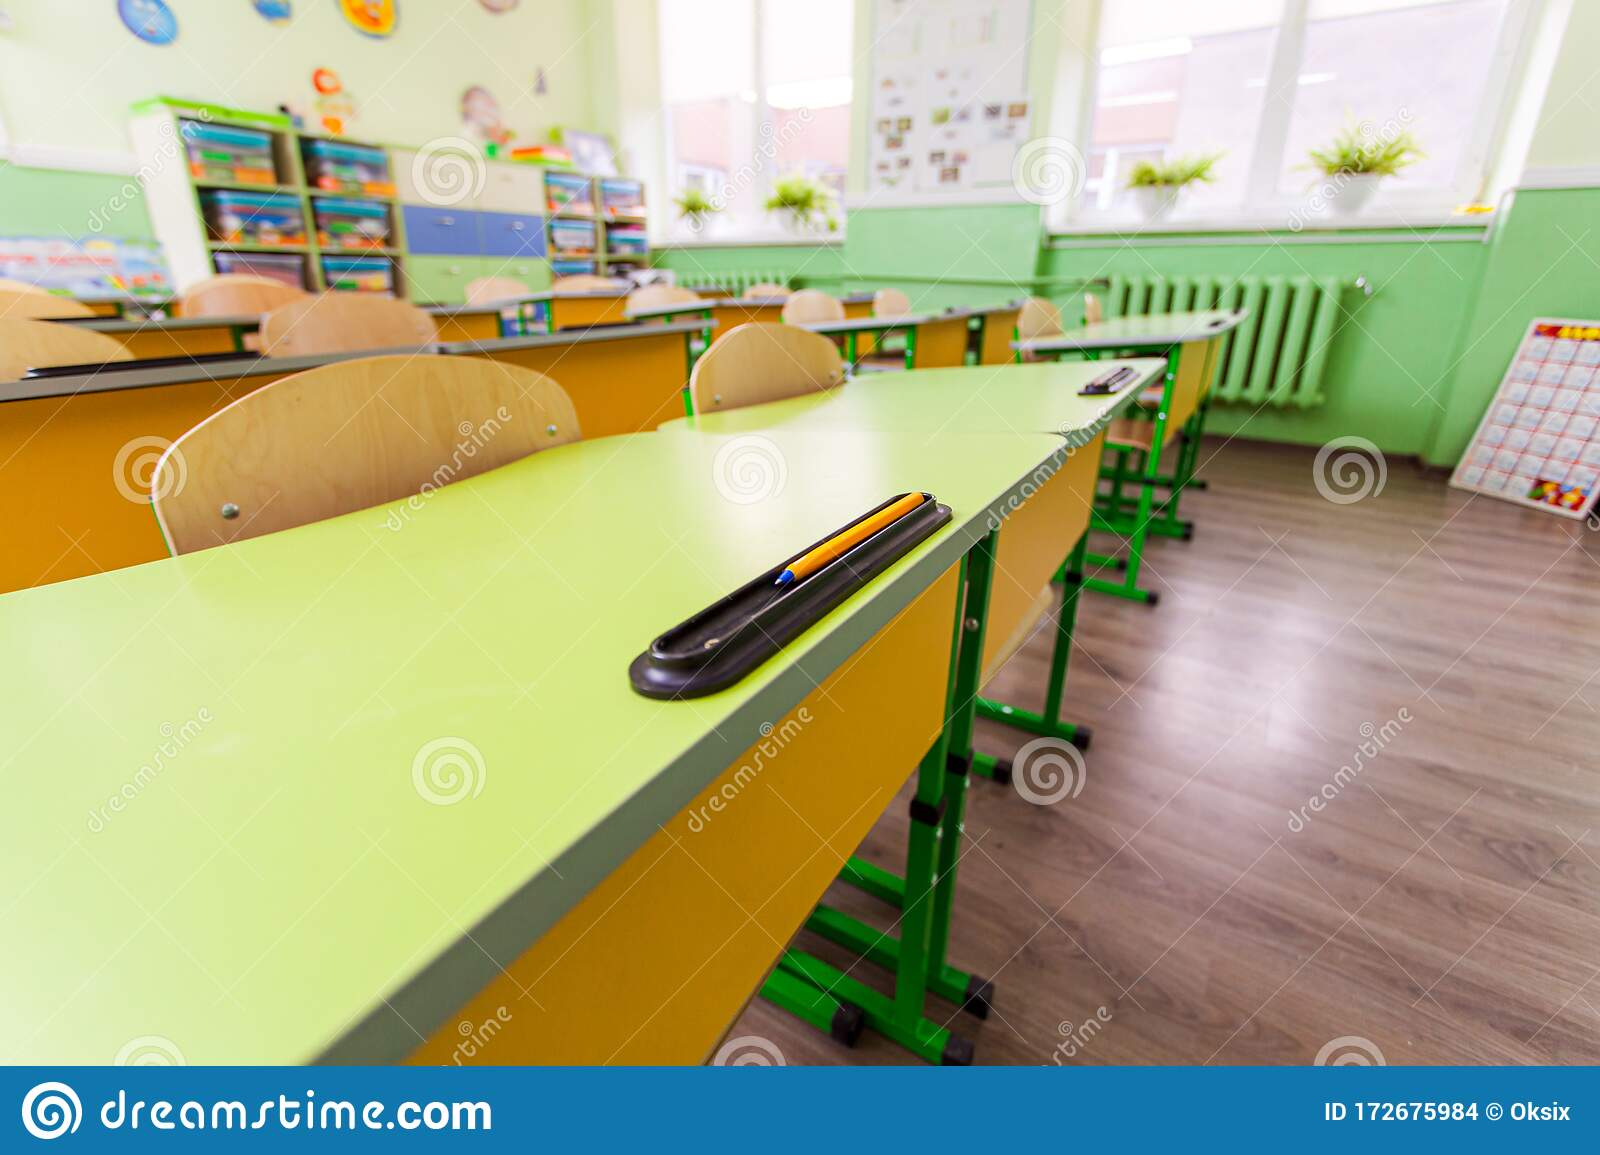 Wide Angle Desks And Chairs In Classroom. Stock Photo - Image of